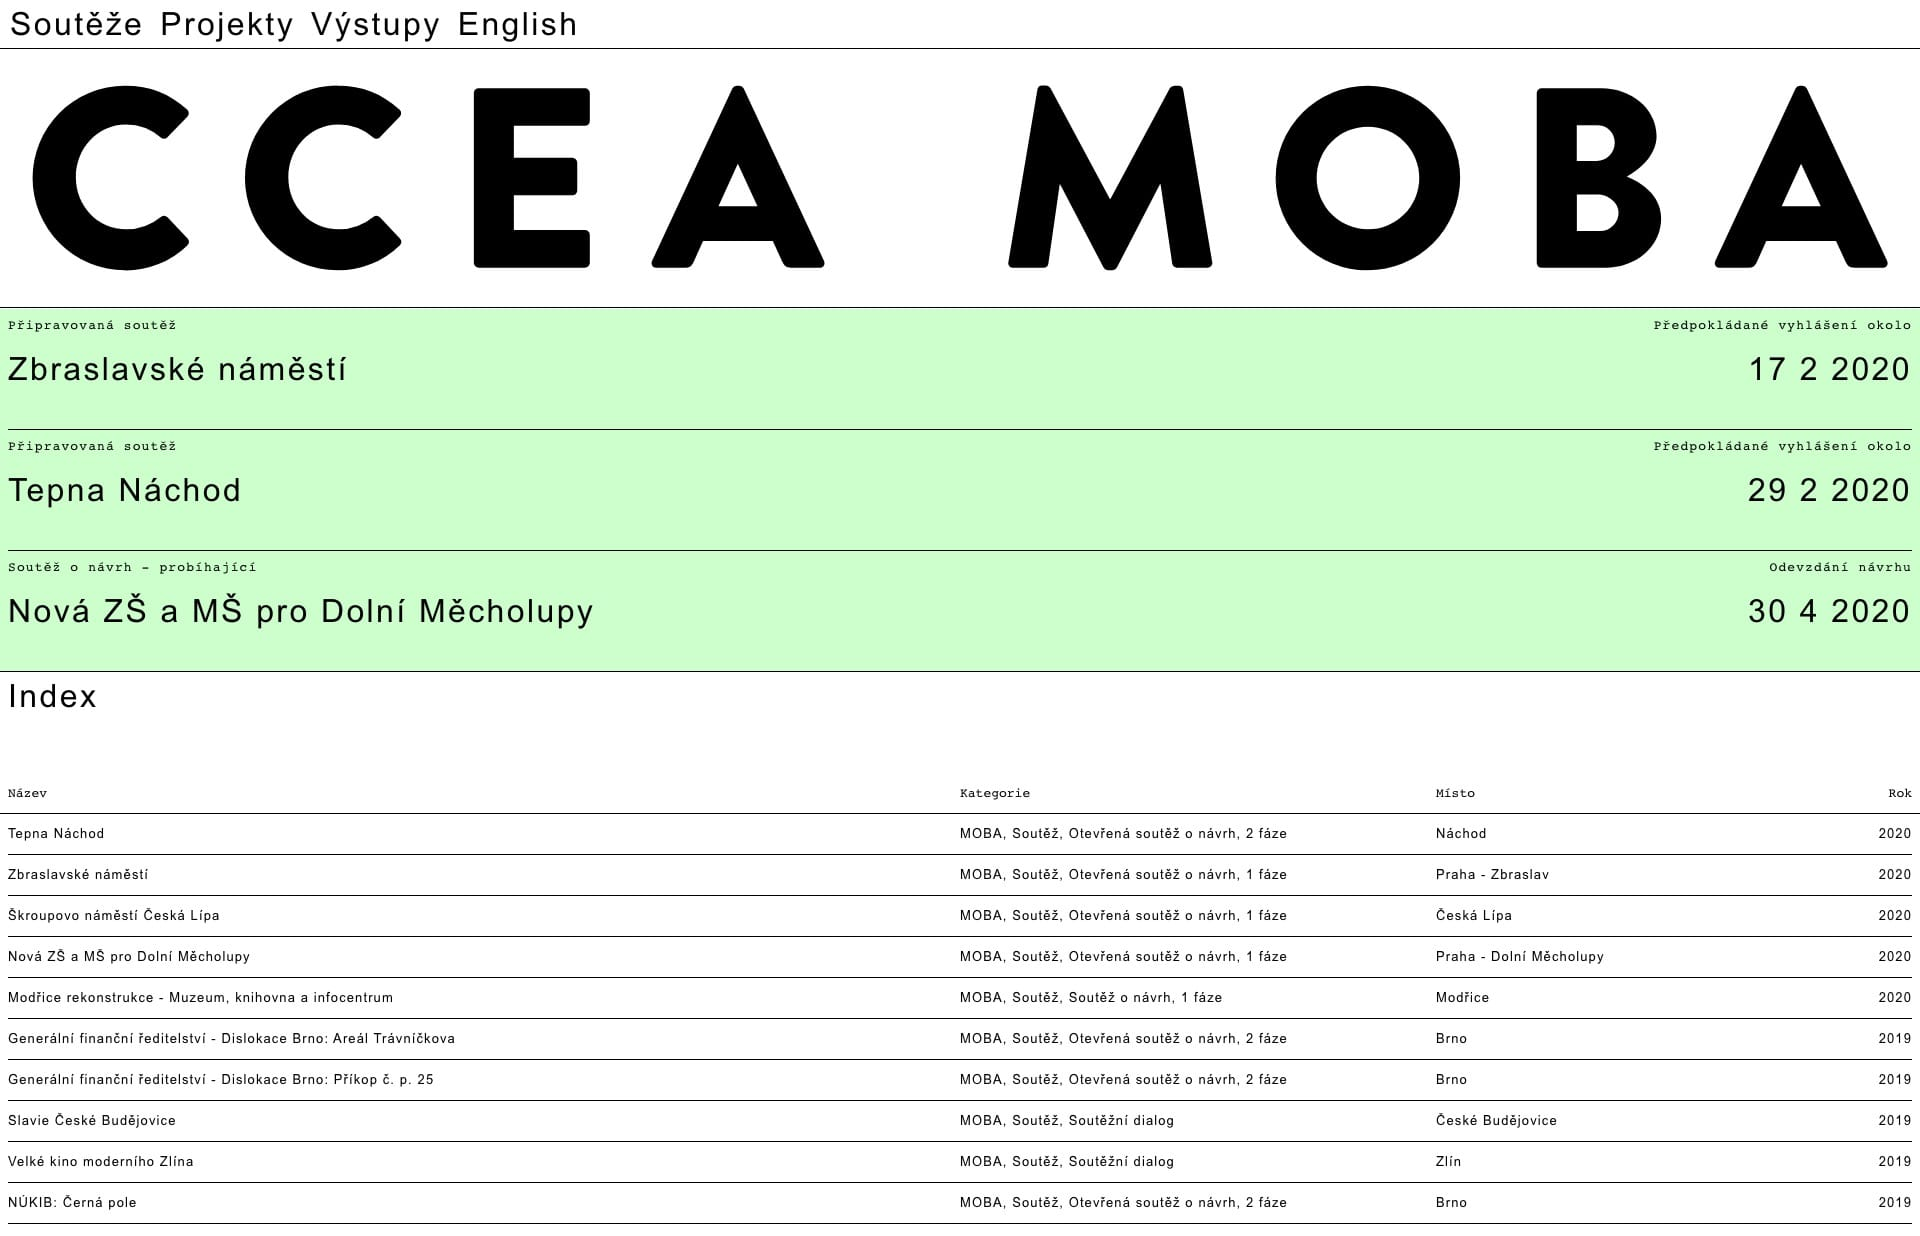 Screenshot of the website CCEA MOBA, featured on The Gallery, a curated collection of minimal websites